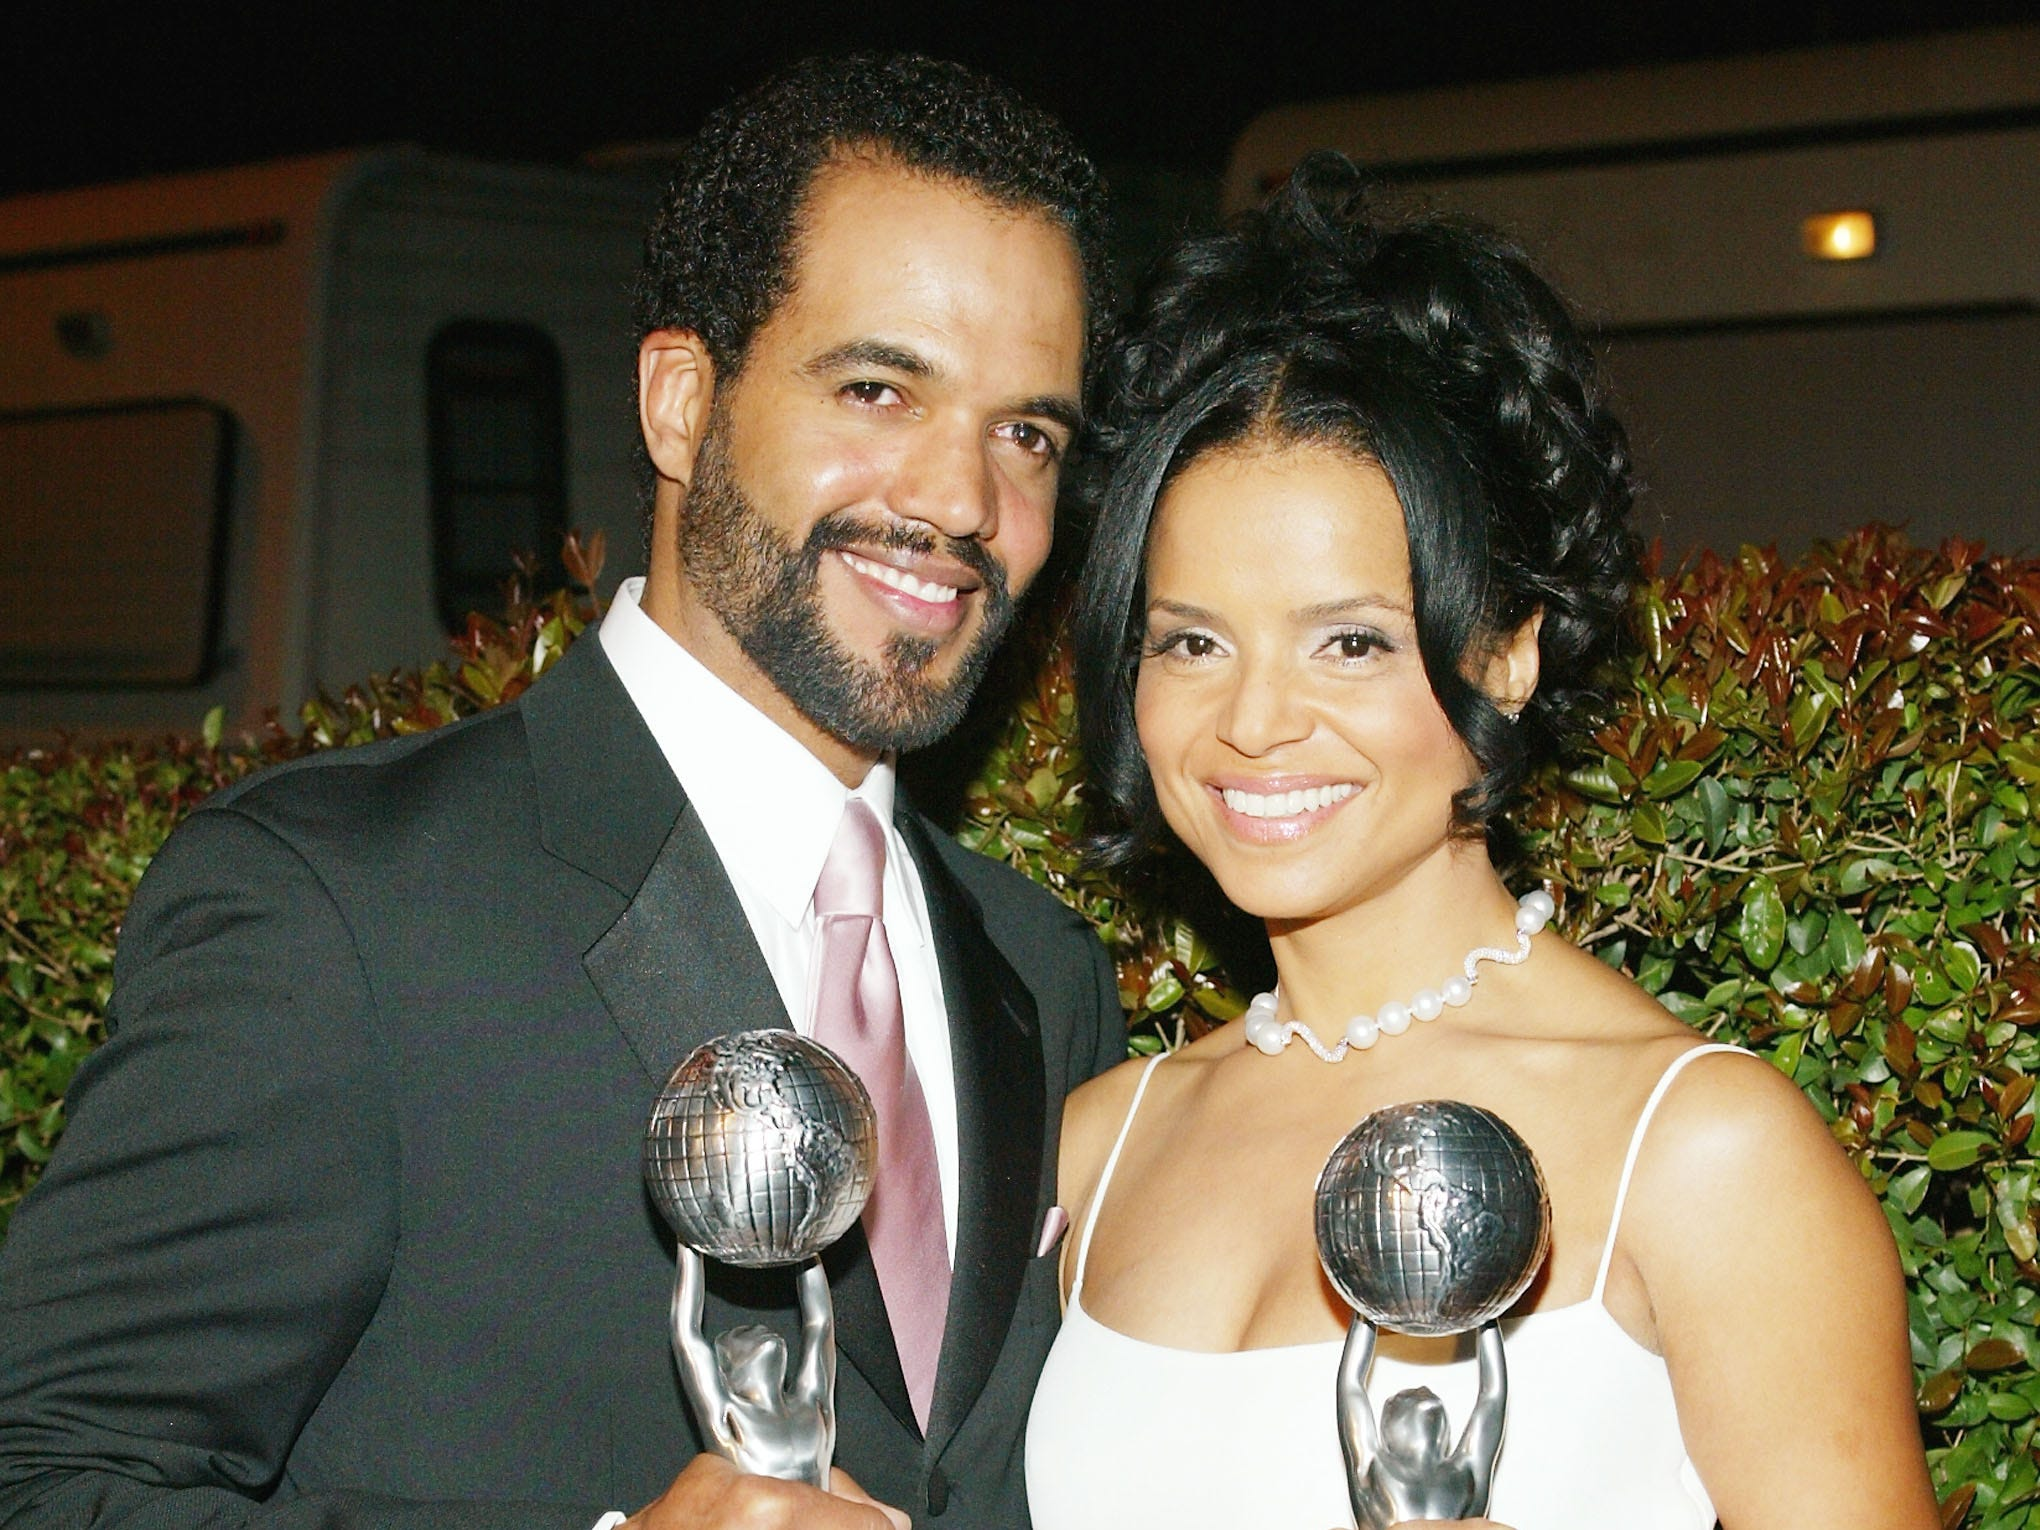 Outstanding Actress in a Daytime Drama Series Winner Victoria Rowell and Outstanding Actor in a Daytime Drama Series Winner  Kristoff St. John at the 35th Annual NAACP Image Awards, March 6, 2004 in Hollywood.